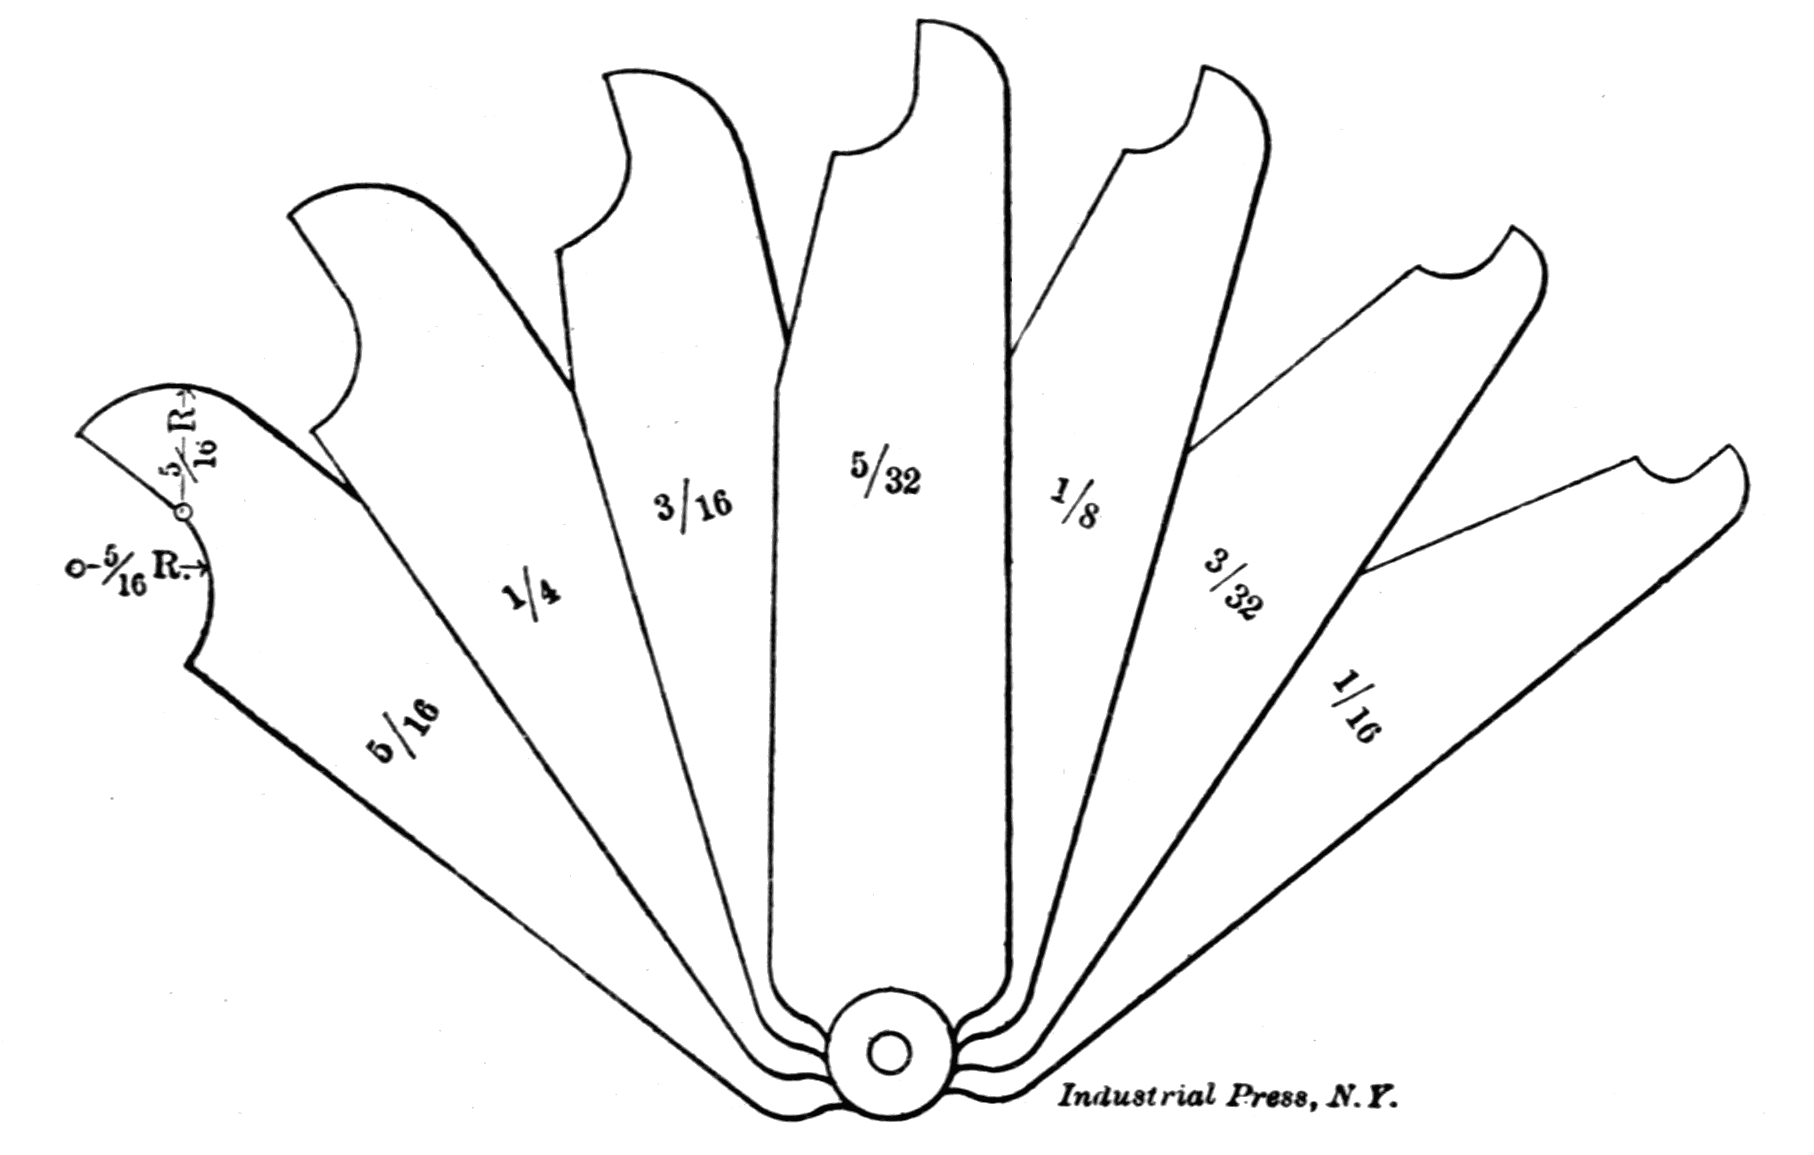 File:Measuring Tools (Industrial Press) Fig 49.png